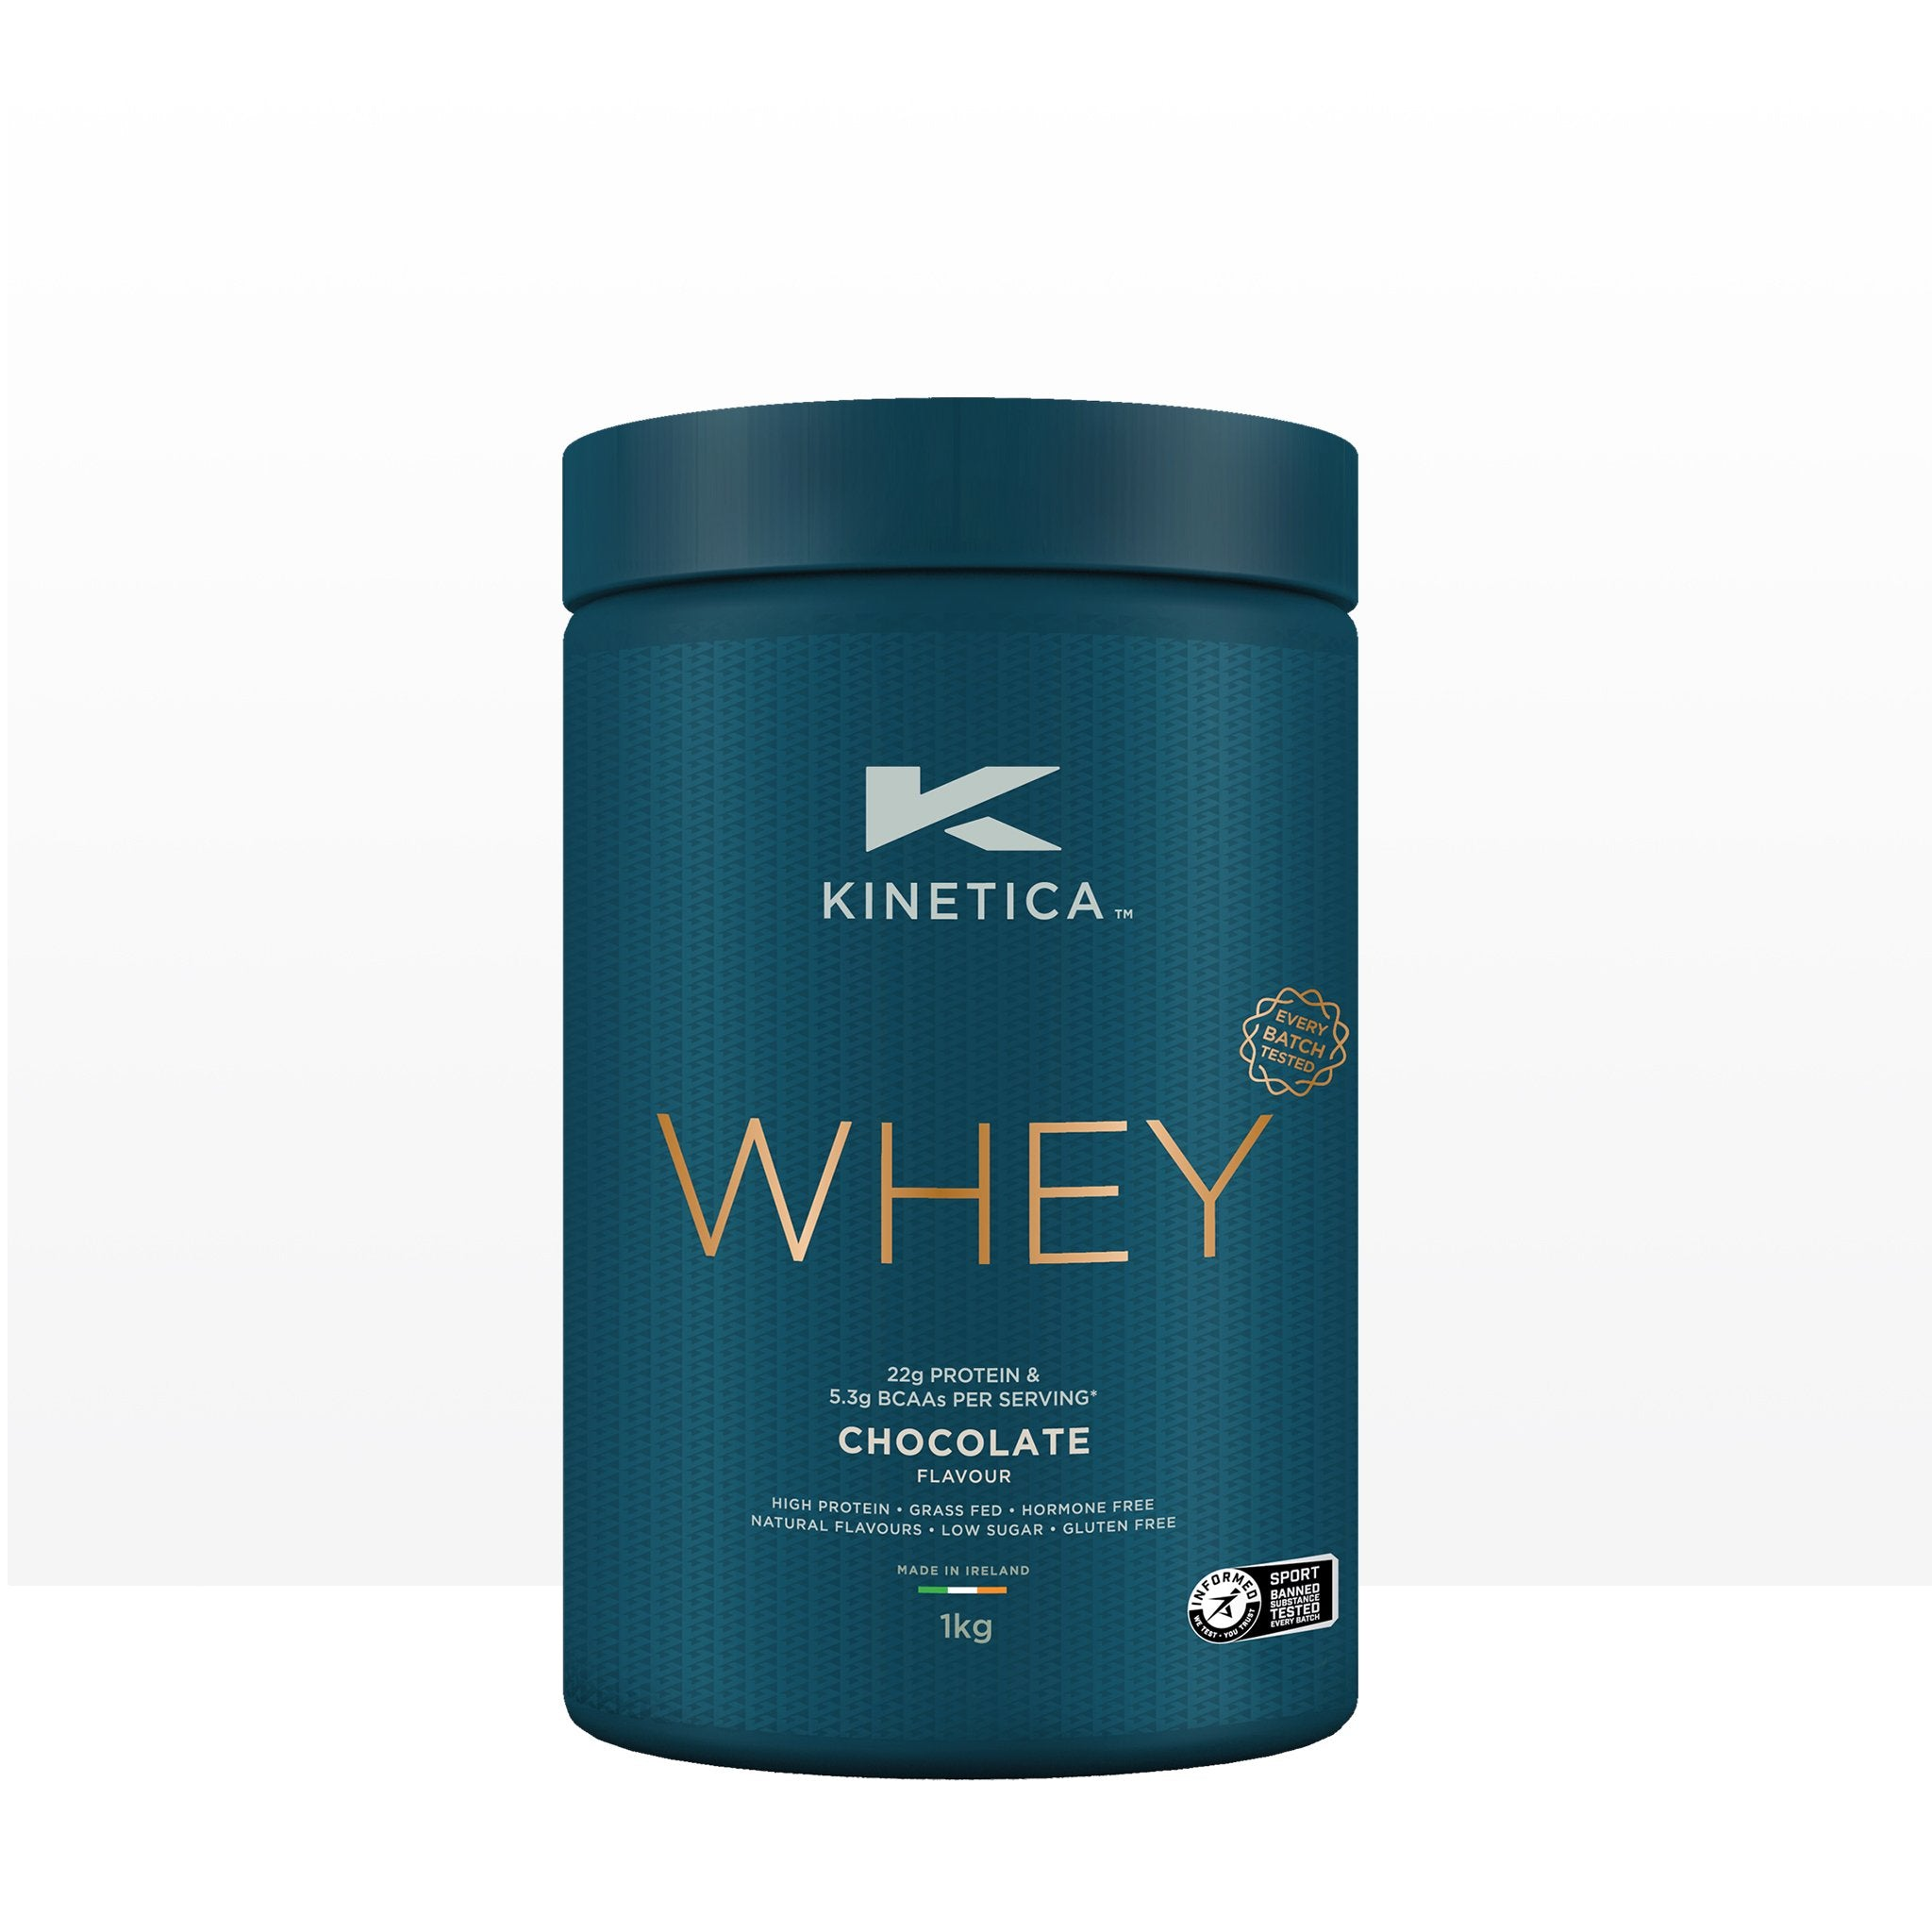 Whey Protein Chocolate 1kg